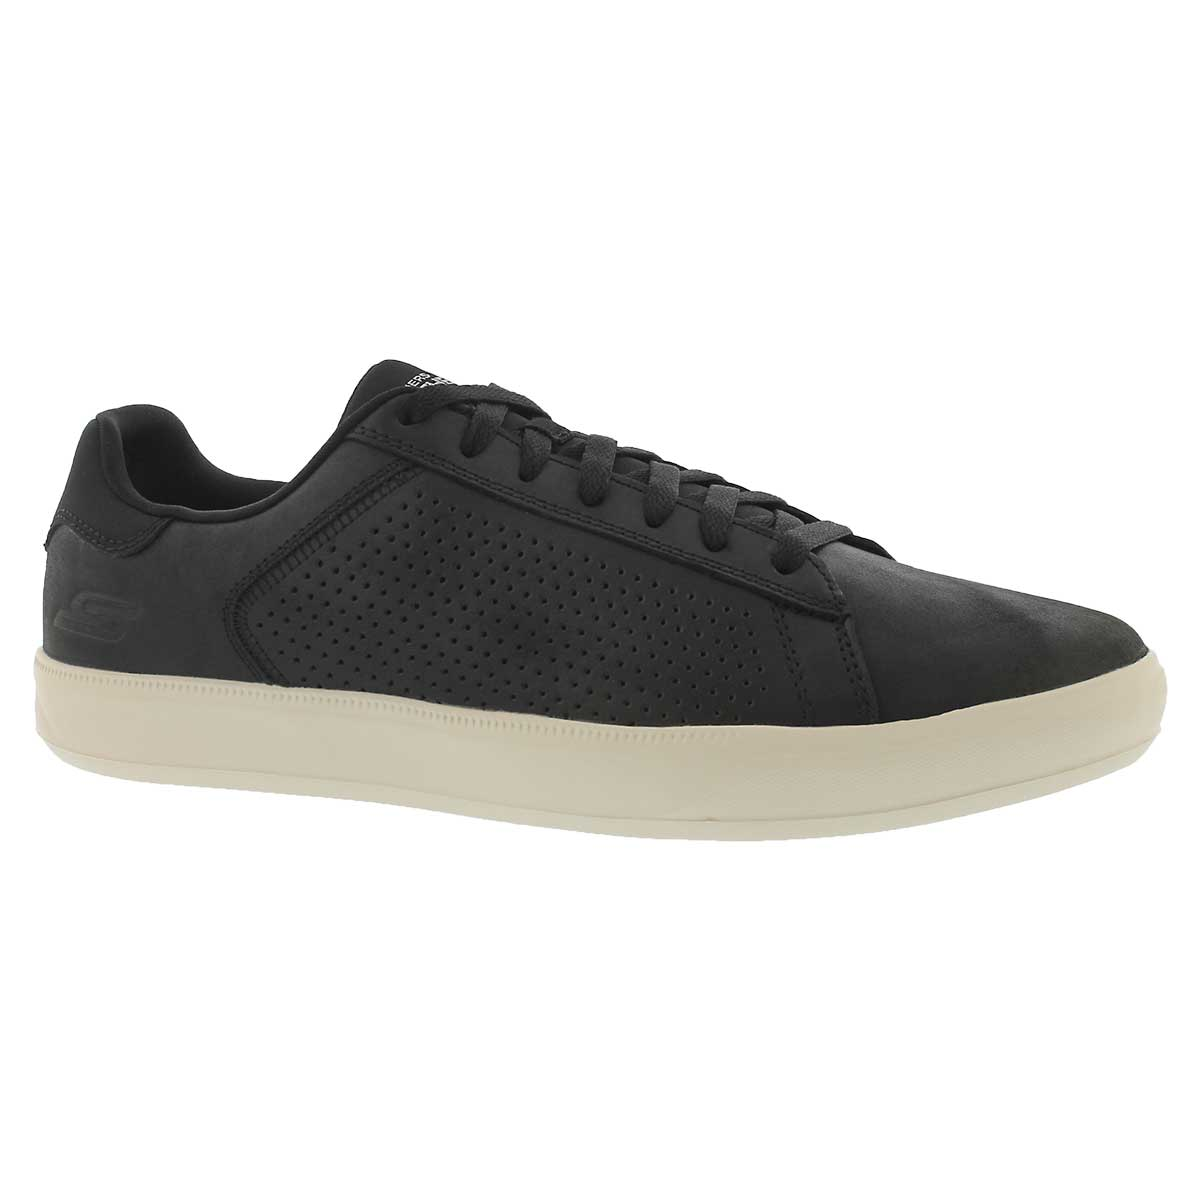 Mns GOvulc 2 blk fashion snkr